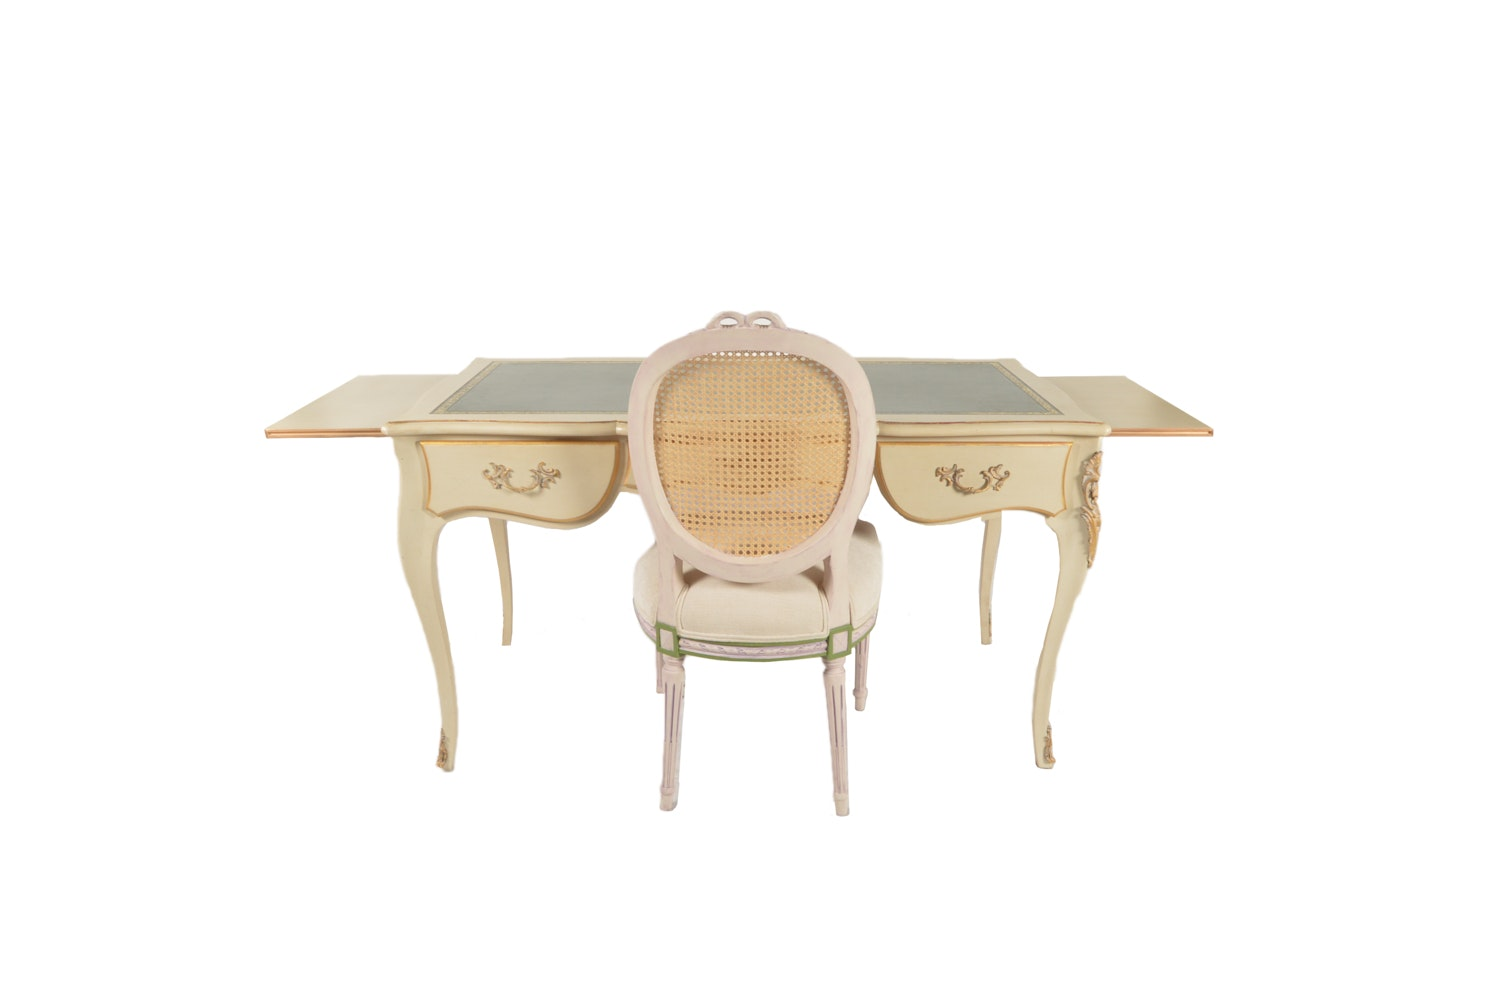 French Provincial Style Painted Desk with Chair, Mid-20th Century